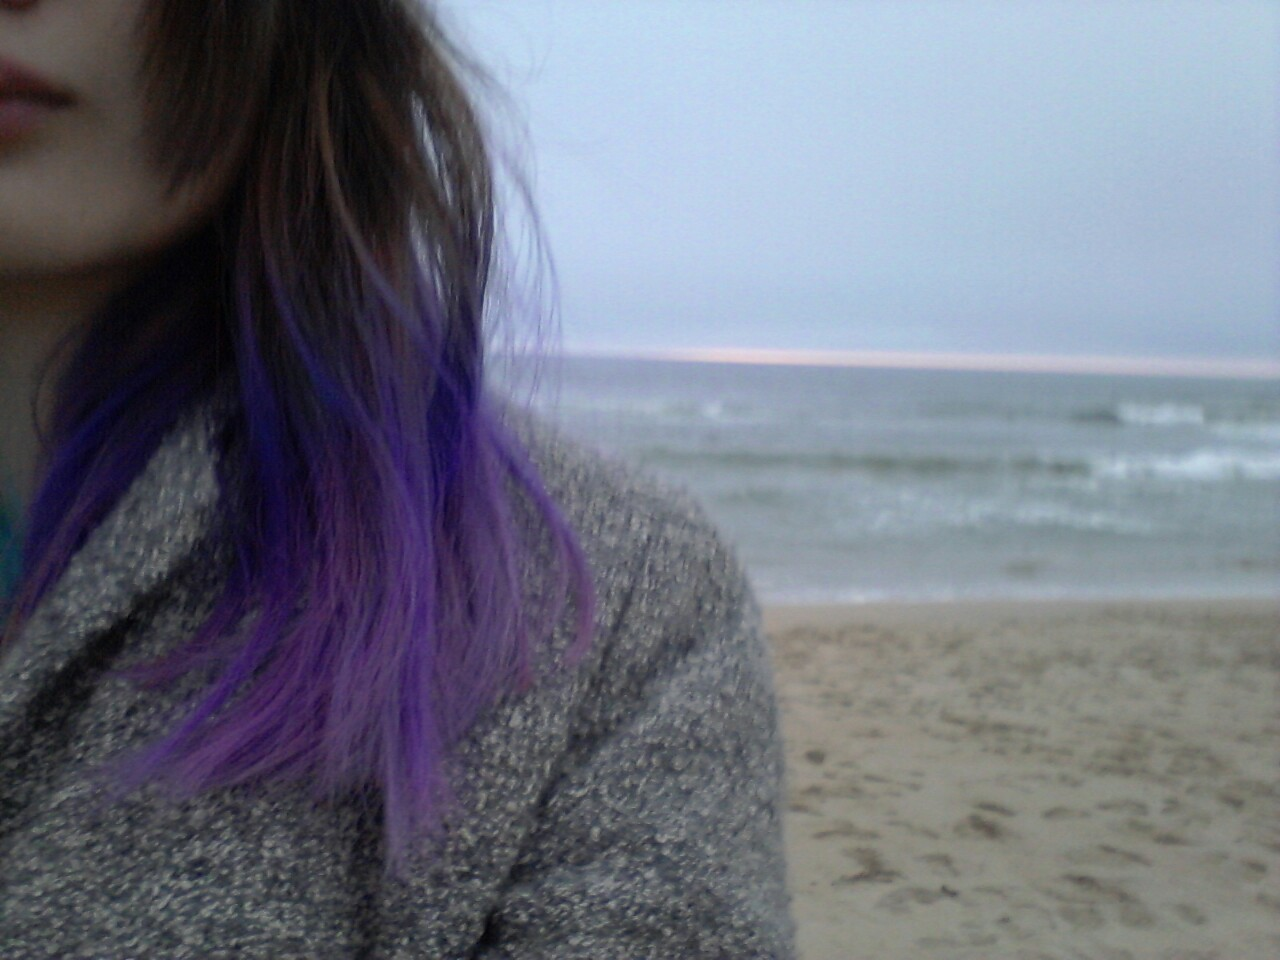 I redid my hairthen went to the beachbut no one was there